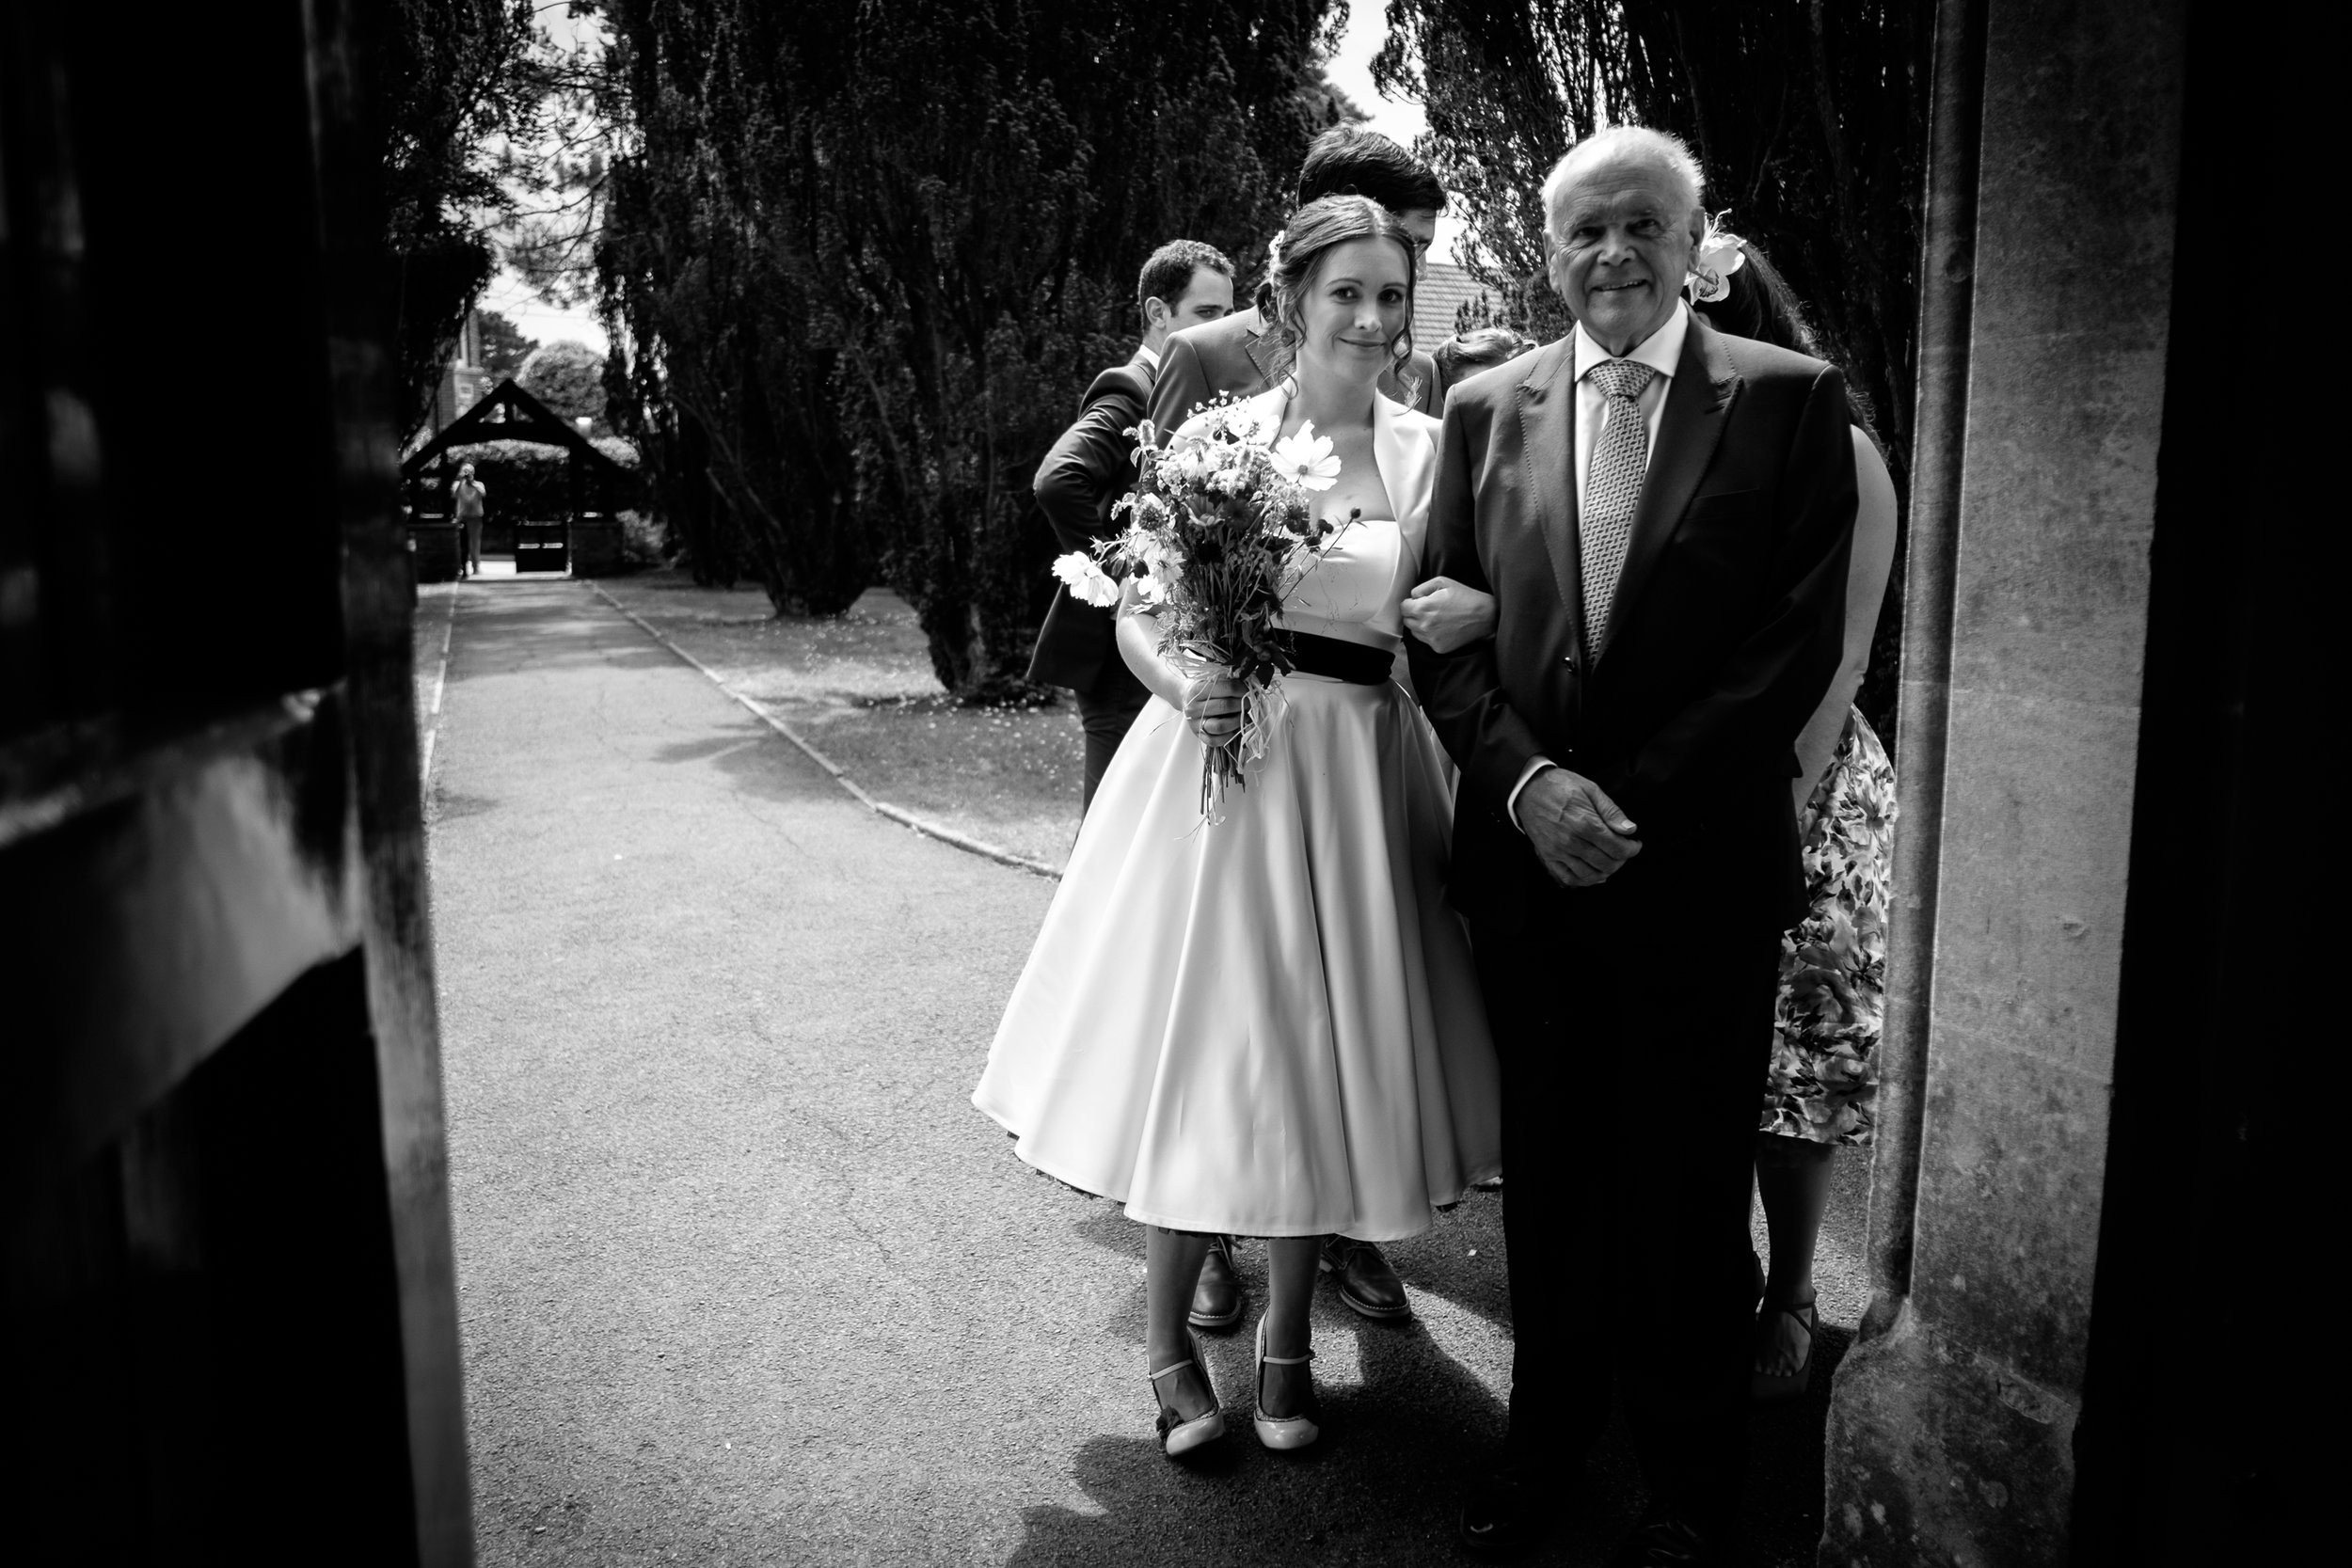 As the nervous bride awaits her entrance with her father.